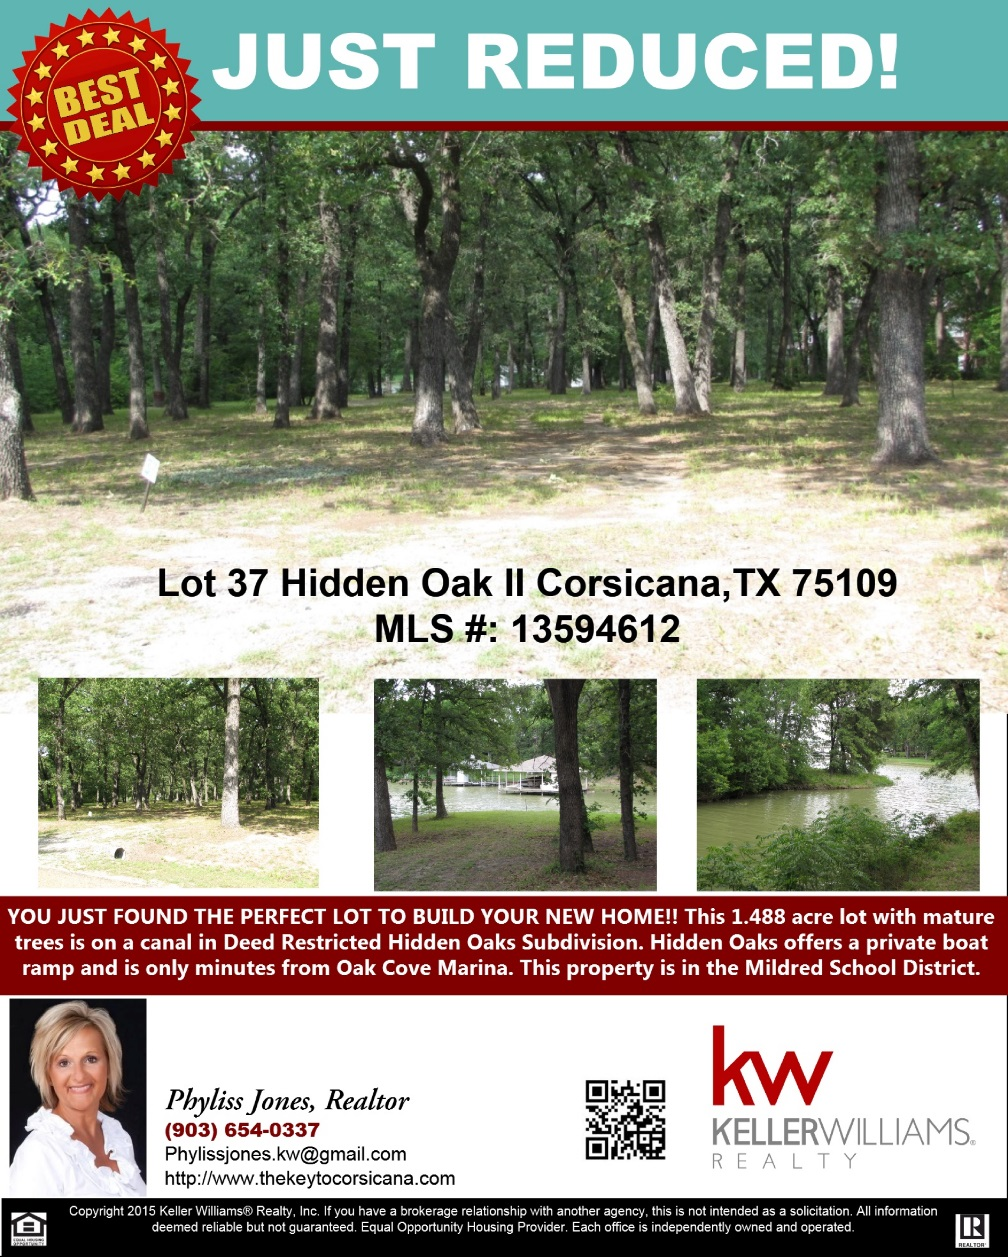 Just Reduced! Please call me for more information Phyliss Jones, Realtor (903) 654-0337. #Lotforsale #Corsicanalotforsale #KW #Kellerwilliamsarlington #Realestate #Bestdeal #Hiddenoaklot #Corsicanalot